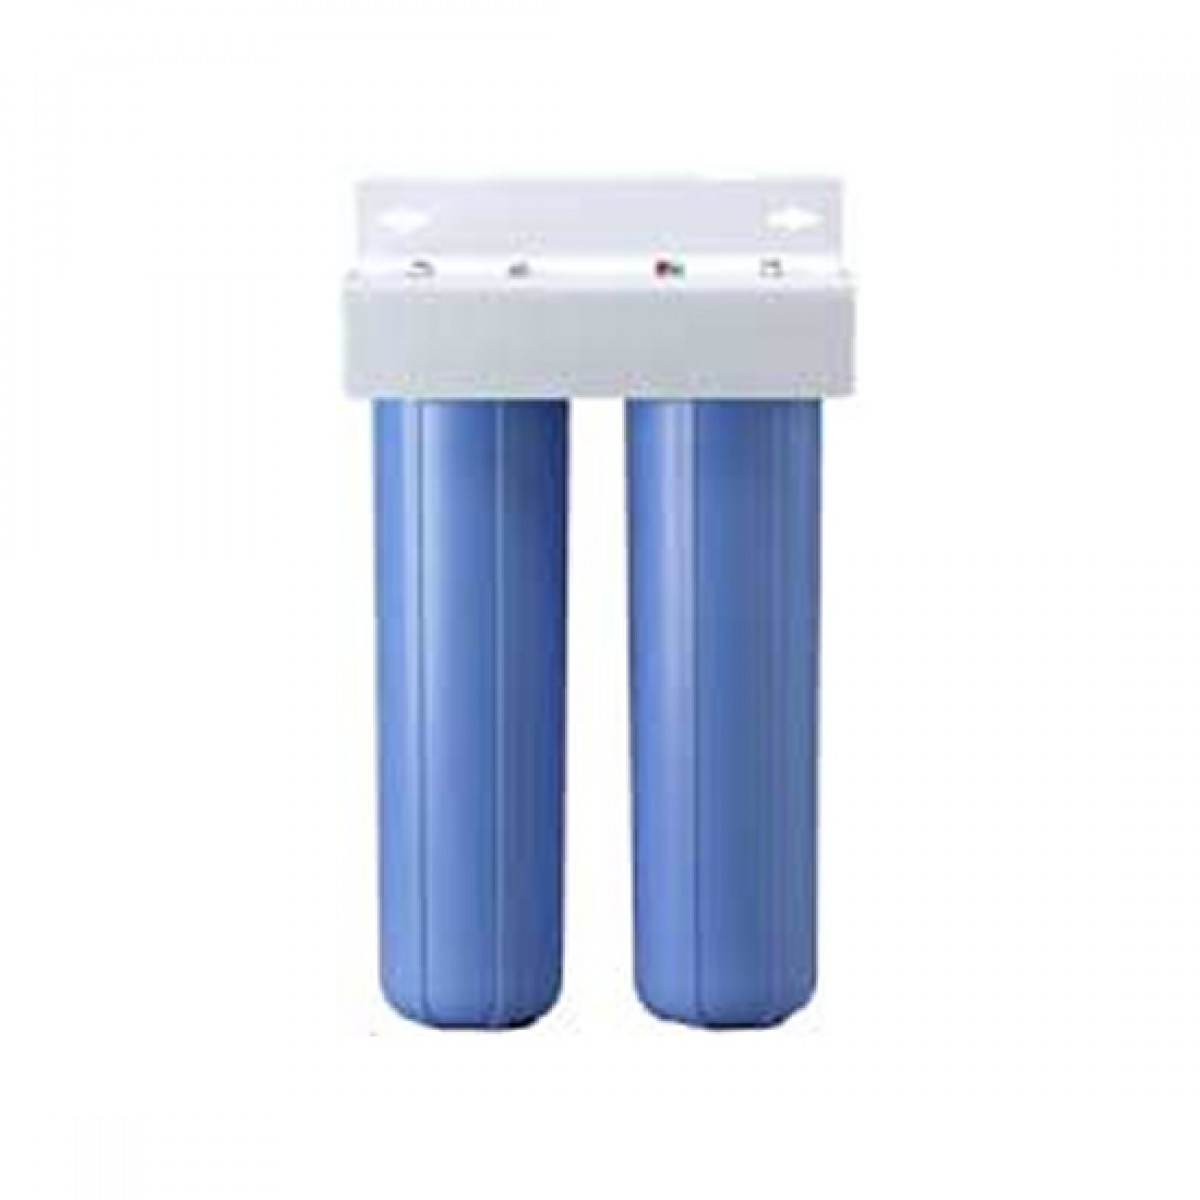 Bbfs 22 two big blue housing water filtration system for Water fountain filtration system